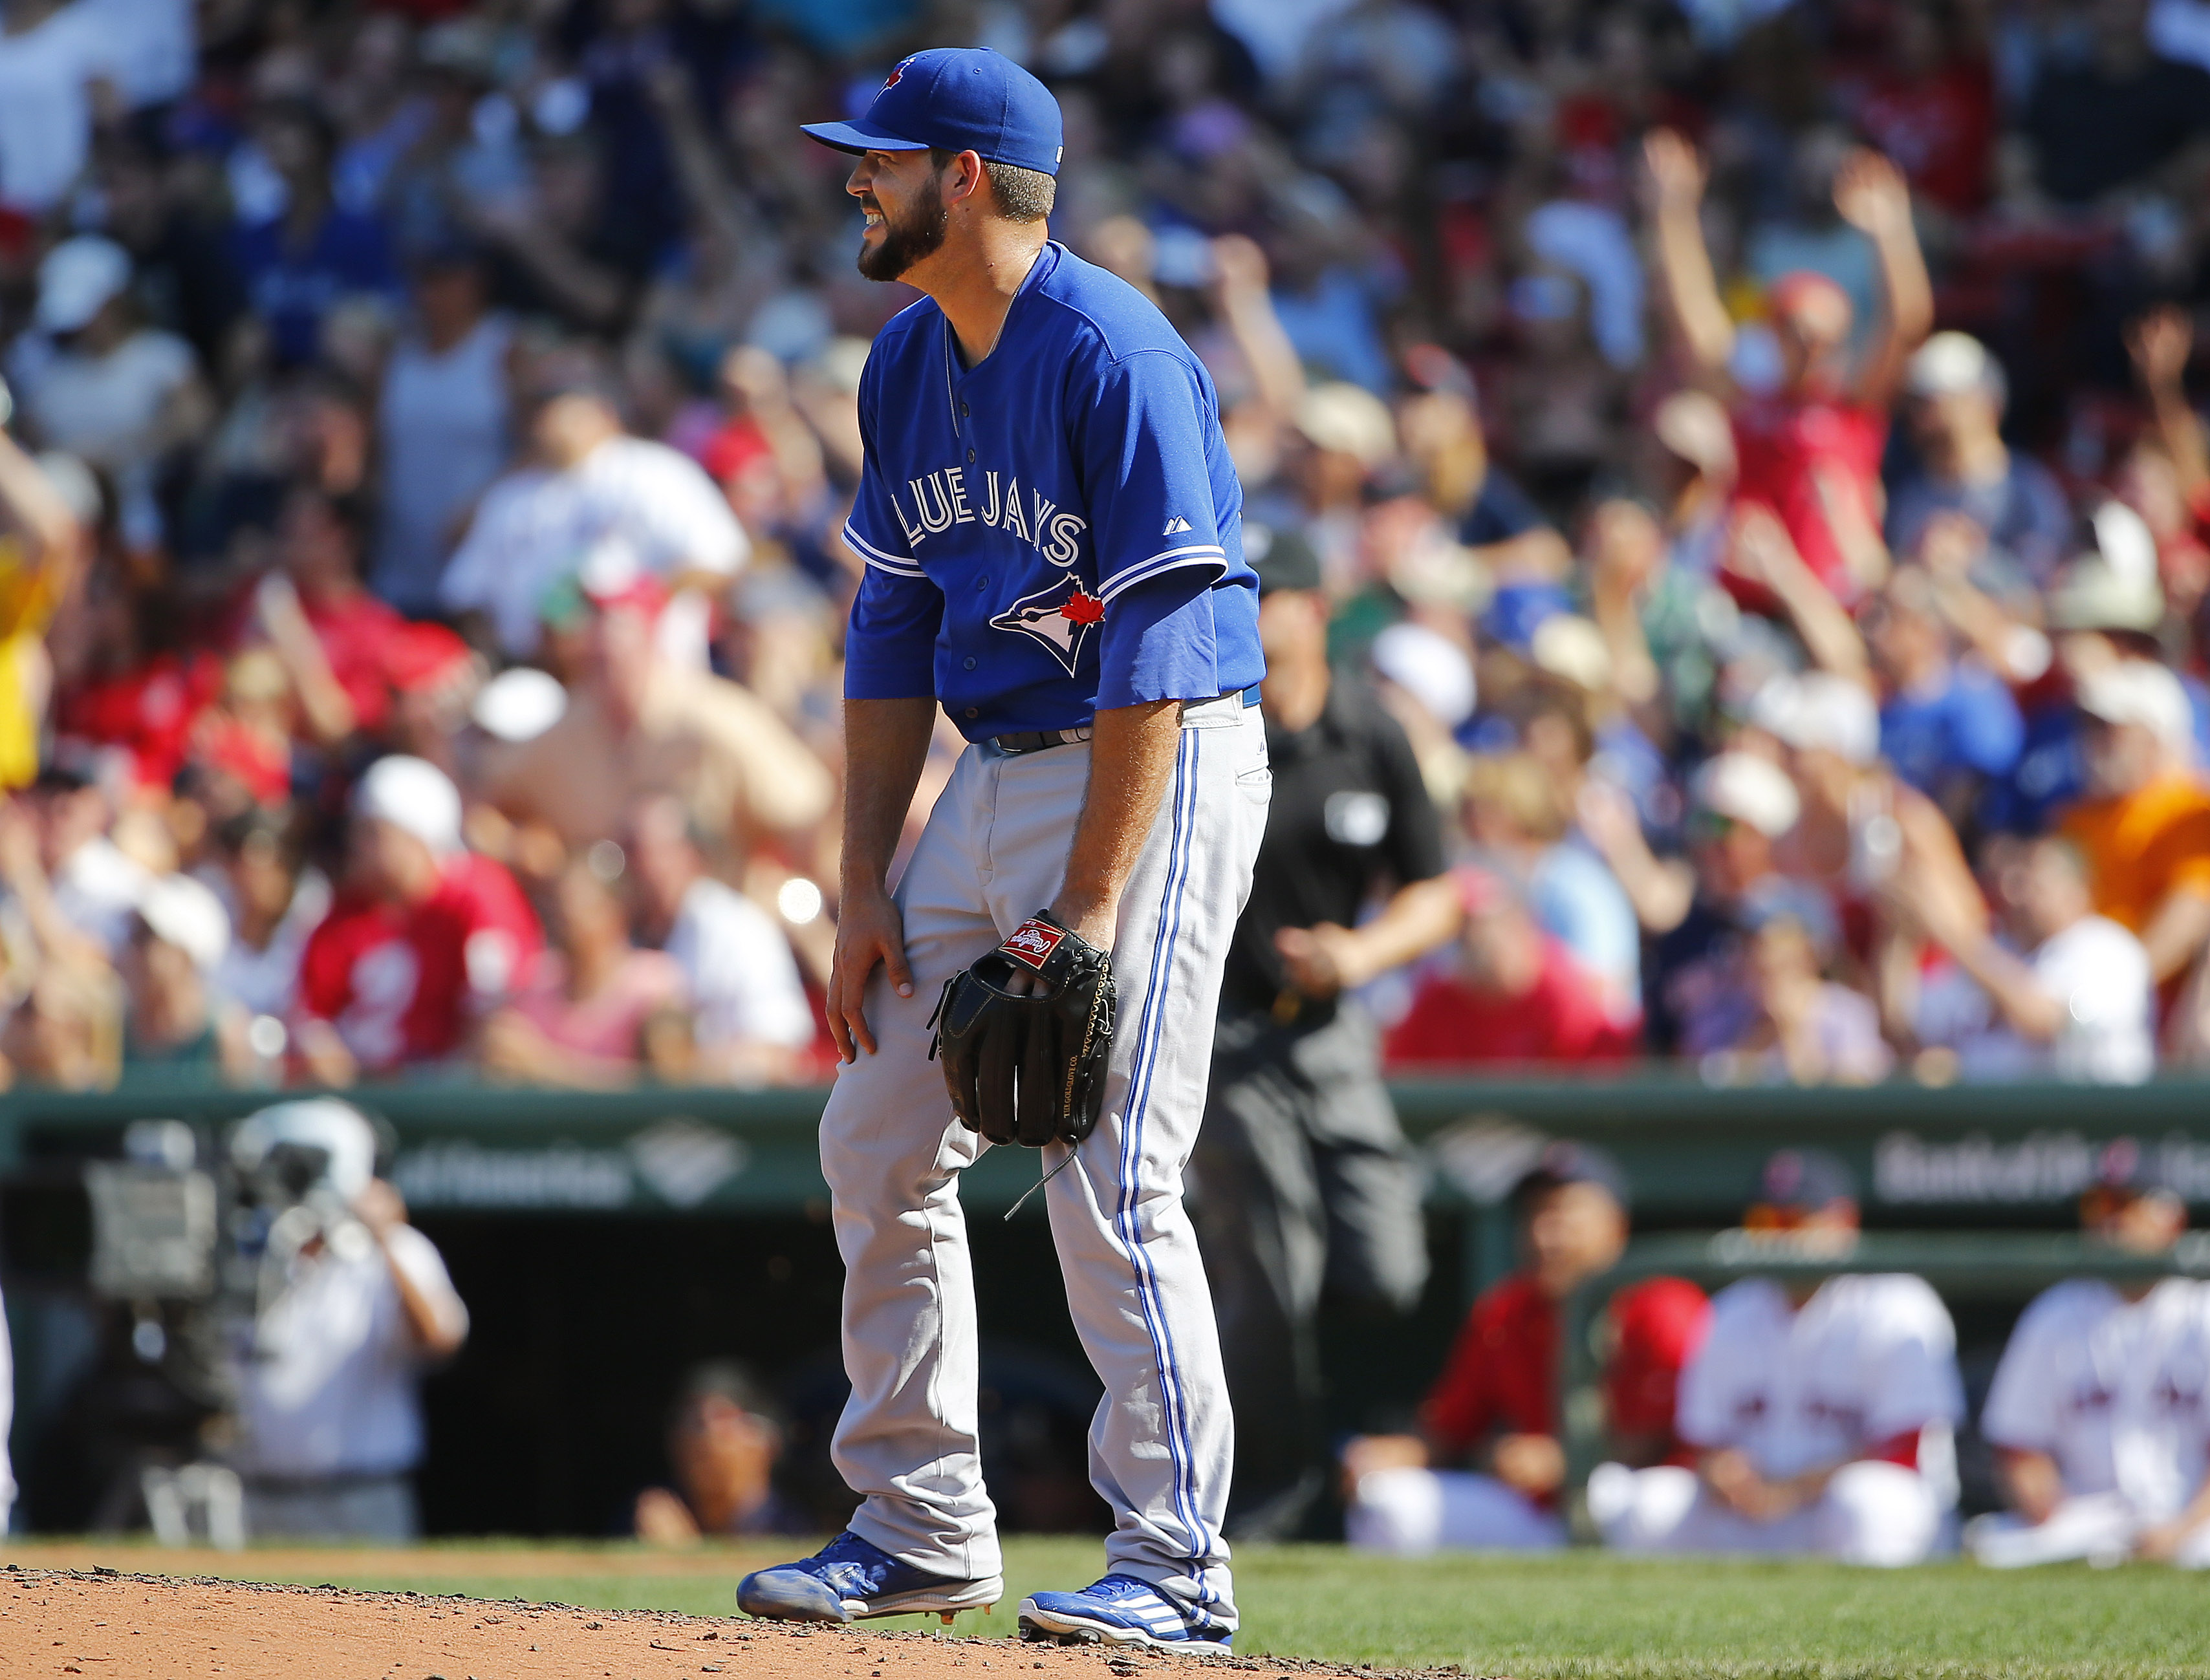 Toronto Blue Jays relief pitcher Ryan Tepera slumps on the mound after giving up a two-run home run to Boston Red Sox's Jackie Bradley Jr. during the sixth inning of a baseball game at Fenway Park in Boston Monday, Sept. 7, 2015. (AP Photo/Winslow Townson